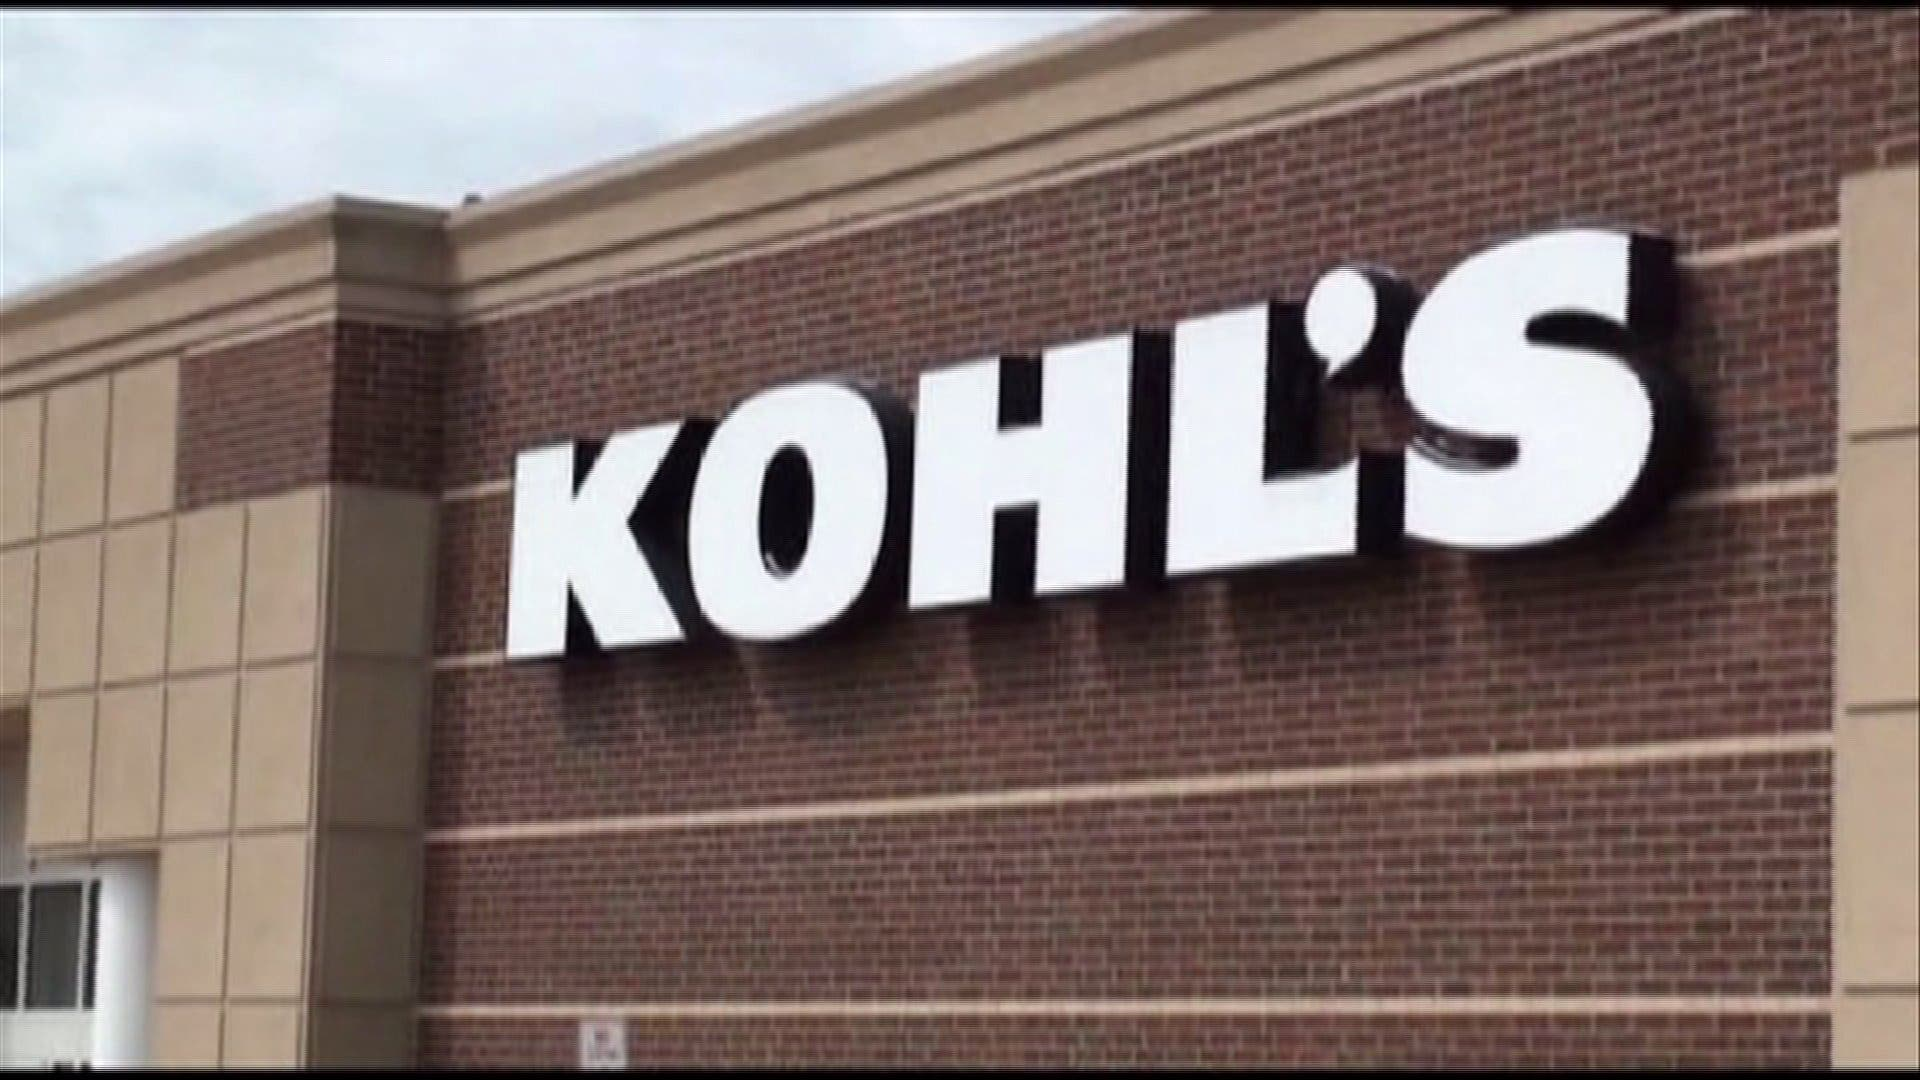 Kohl S Downsizing In Framingham Property Owner To Lease